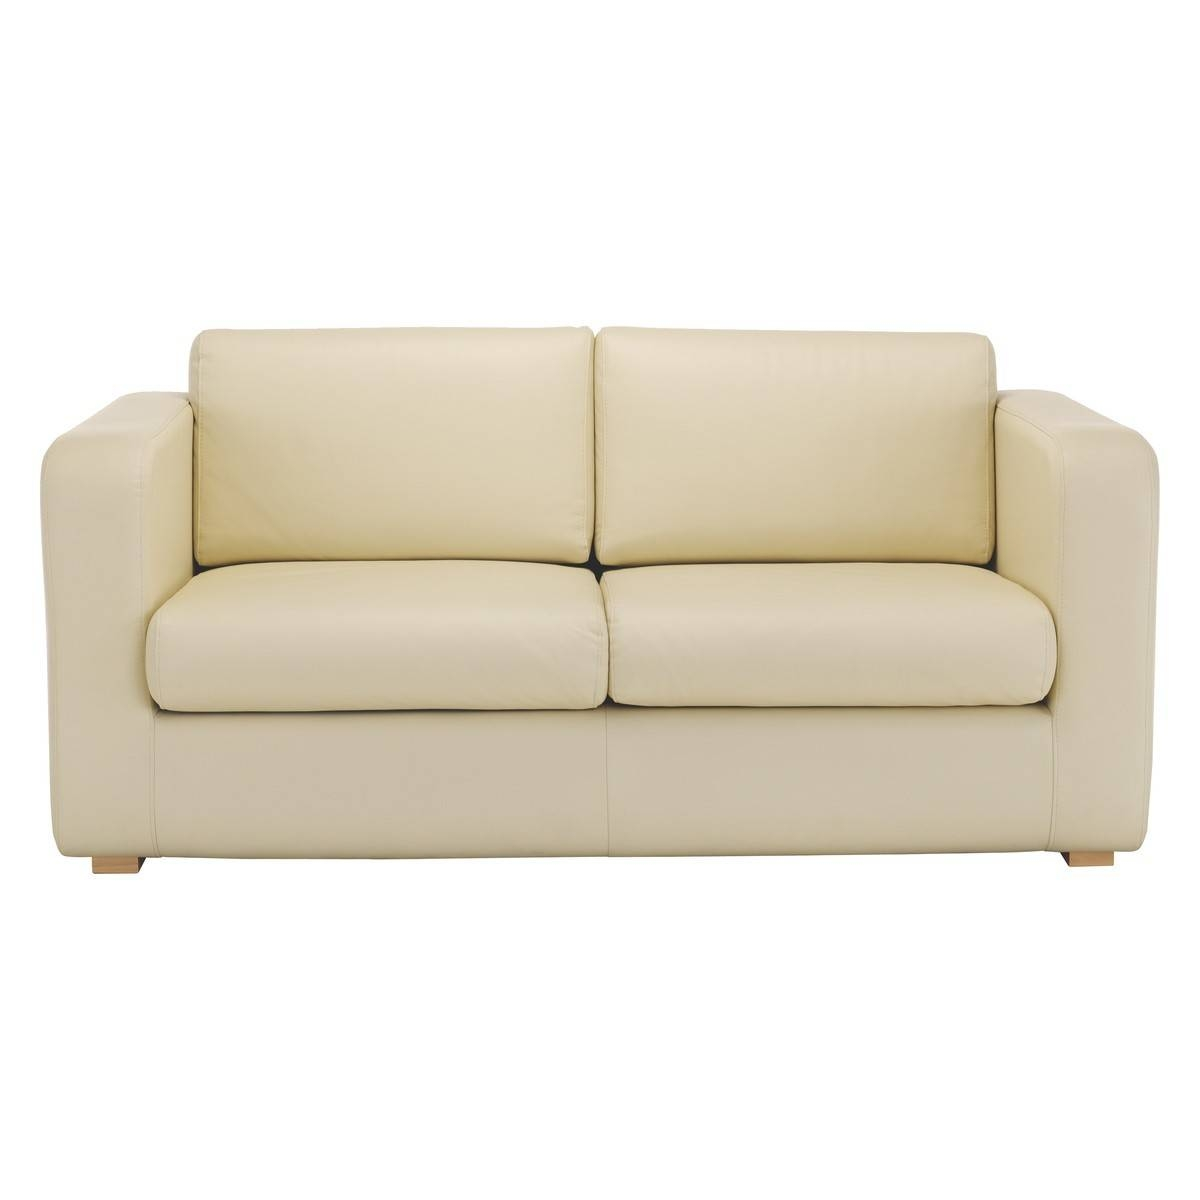 Porto Cream Leather 2 Seater Sofa Bed | Buy Now At Habitat Uk inside Two Seater Chairs (Image 18 of 30)